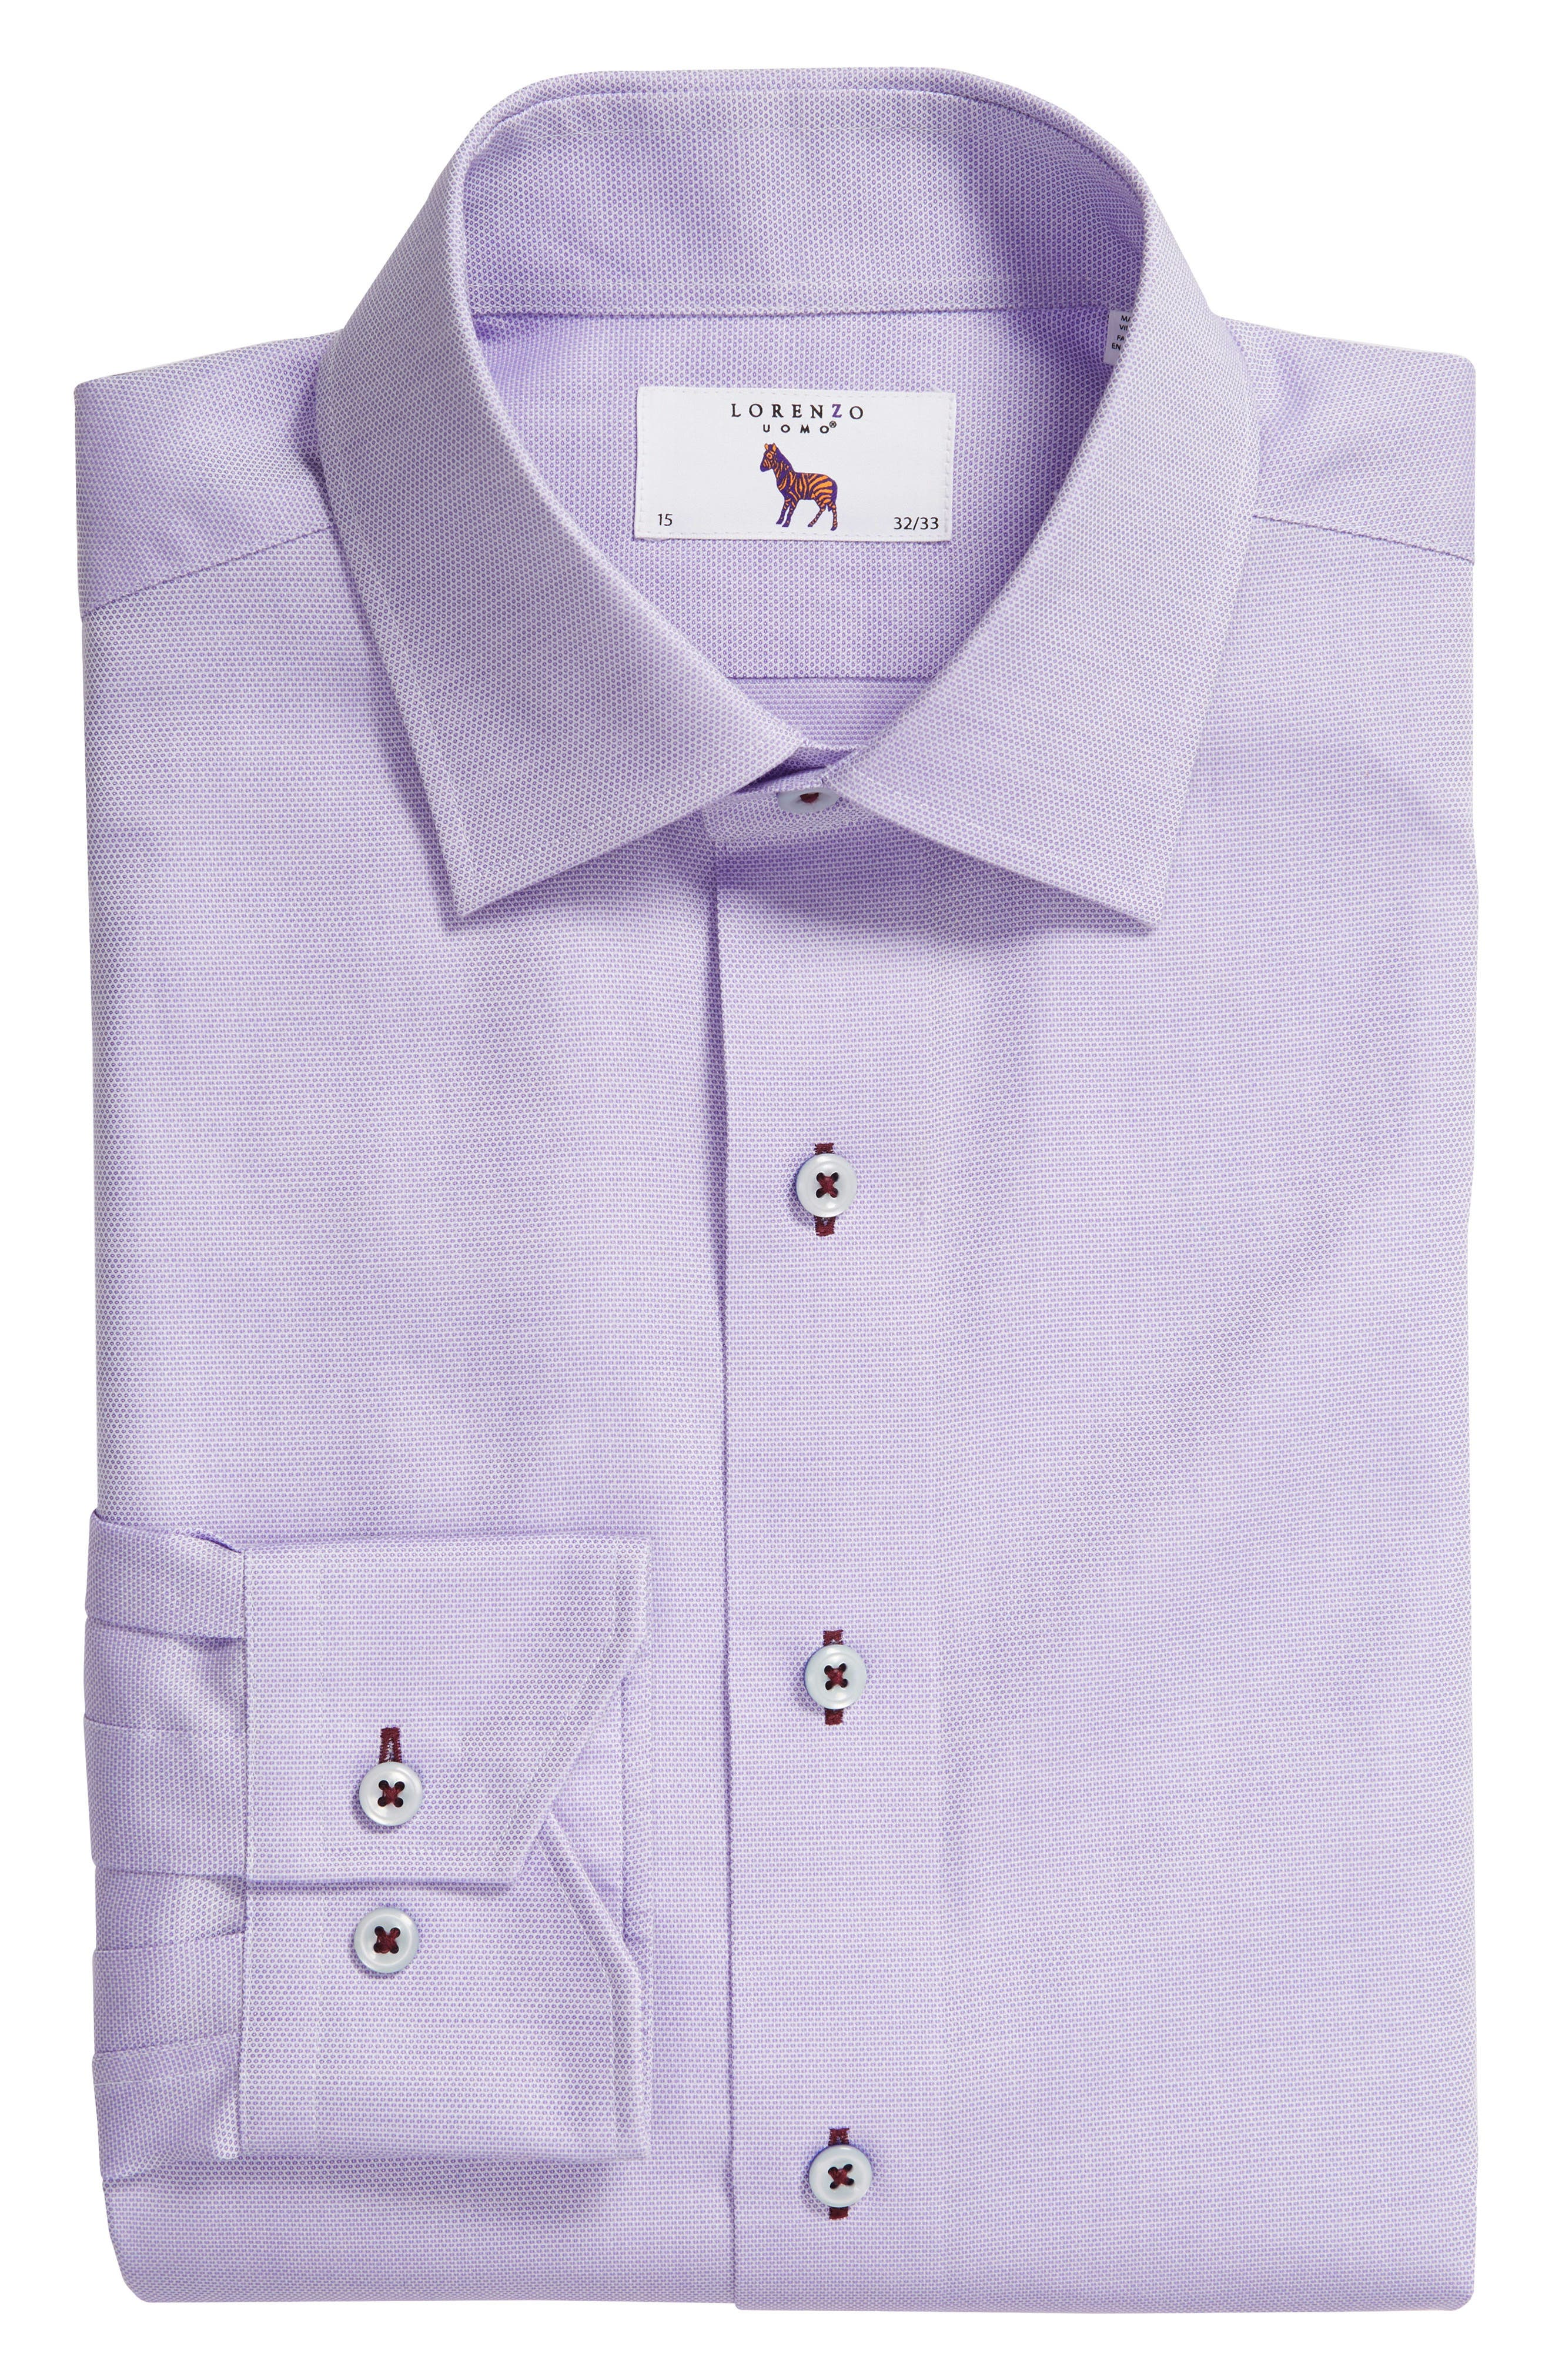 Trim Fit Solid Dress Shirt,                             Alternate thumbnail 5, color,                             530